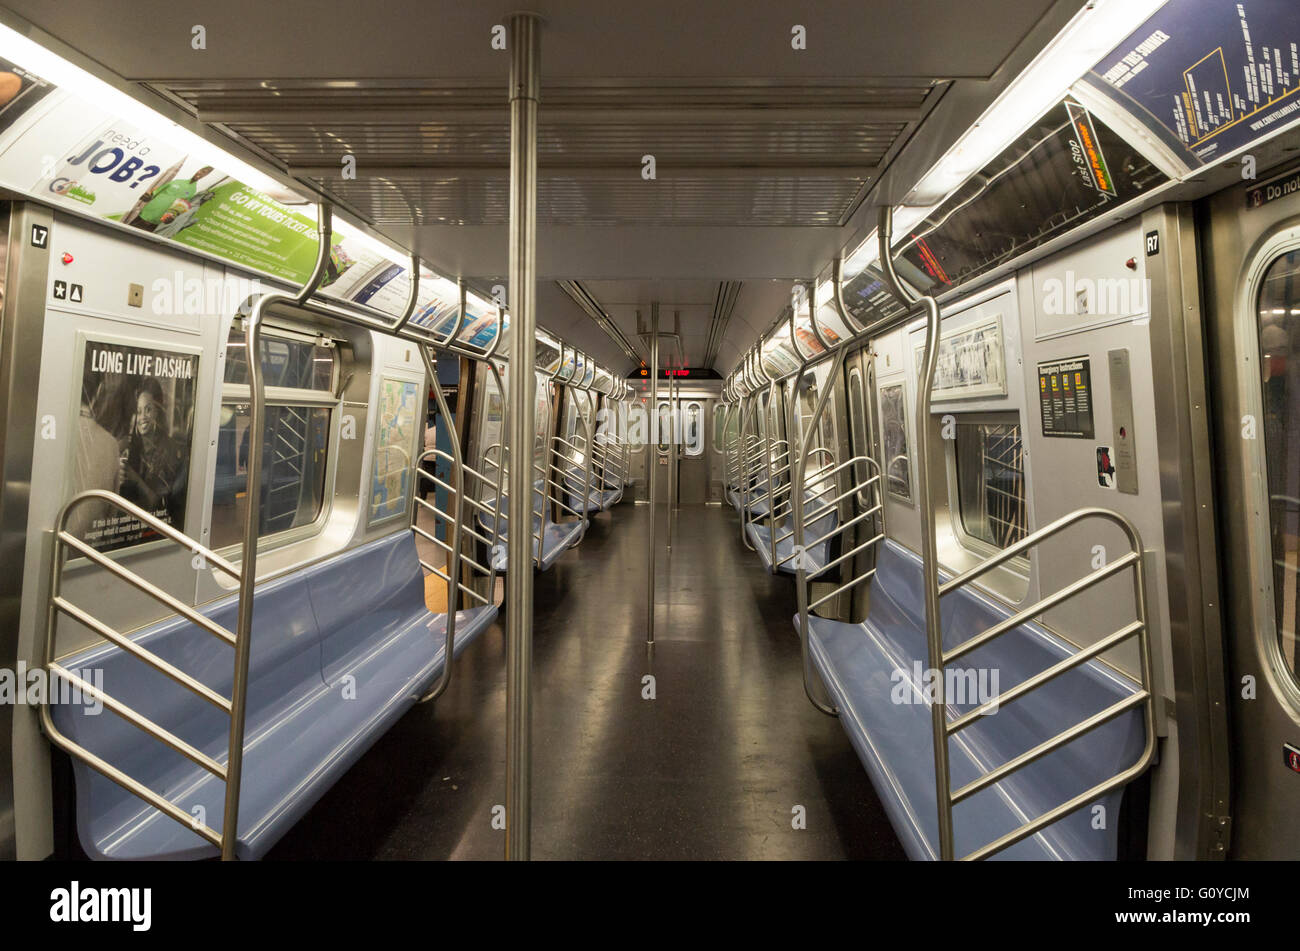 Innere Leere u-Bahn von New York City (niemand, niemand) Stockbild